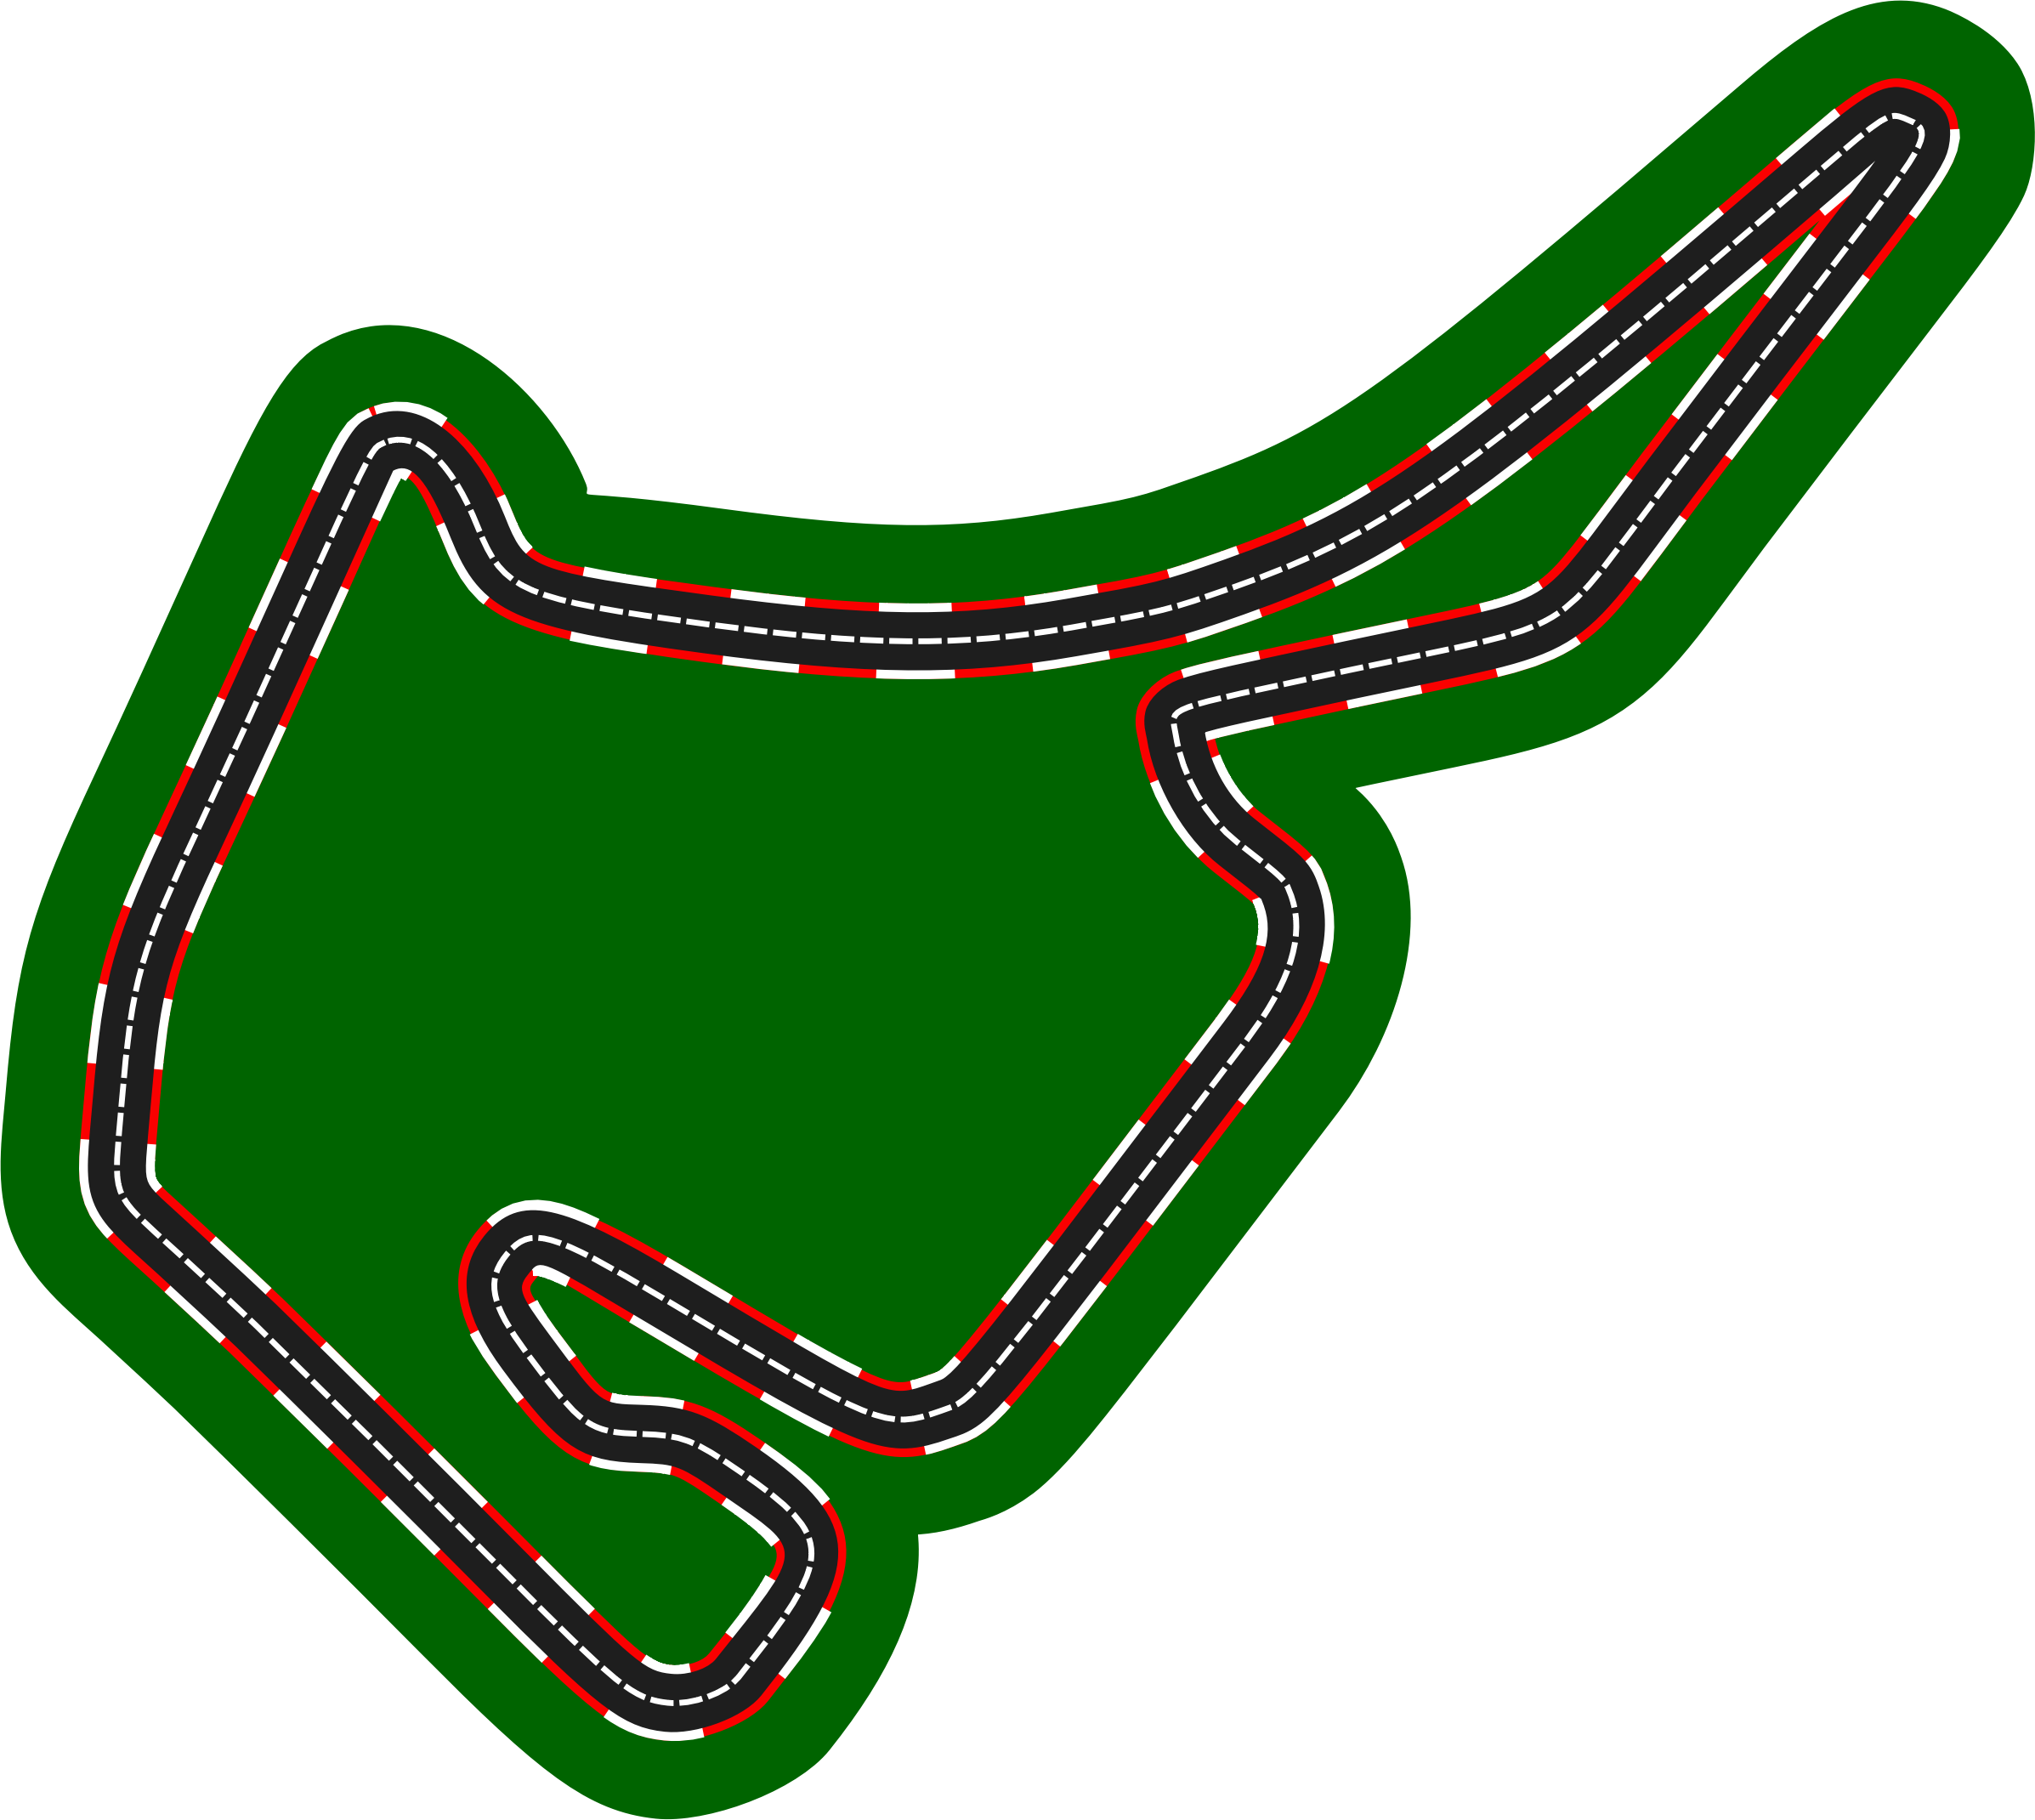 F1 circuits 2014-2018 - Hockenheimring (version 2) by Firkin